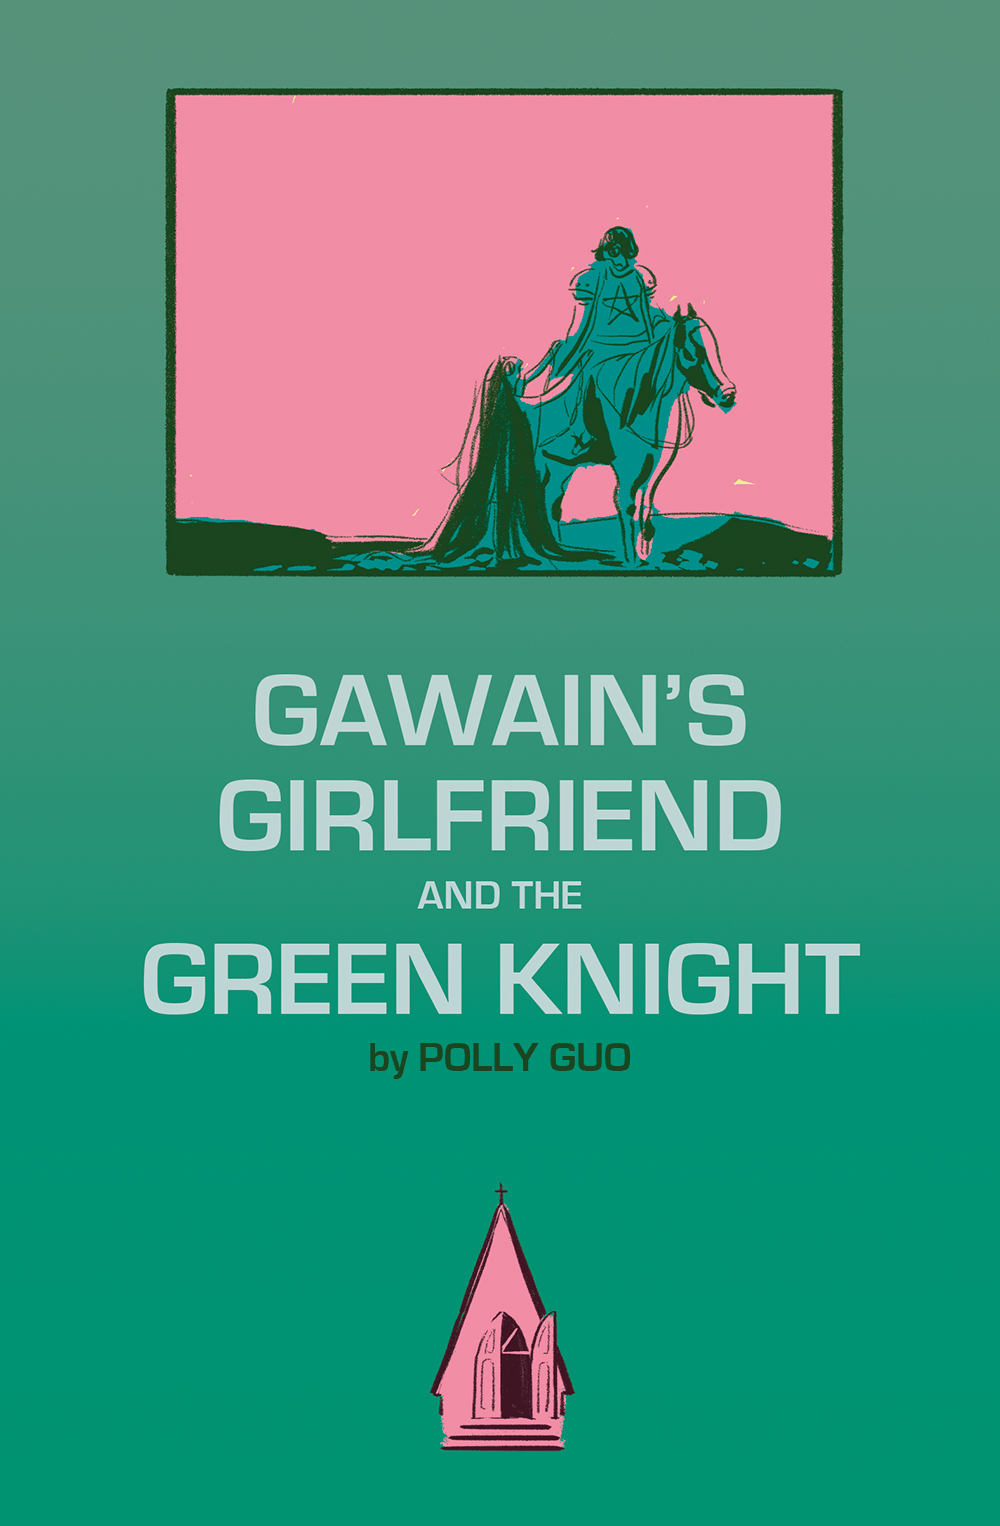 Gawain's Girlfriend and the Green Knight